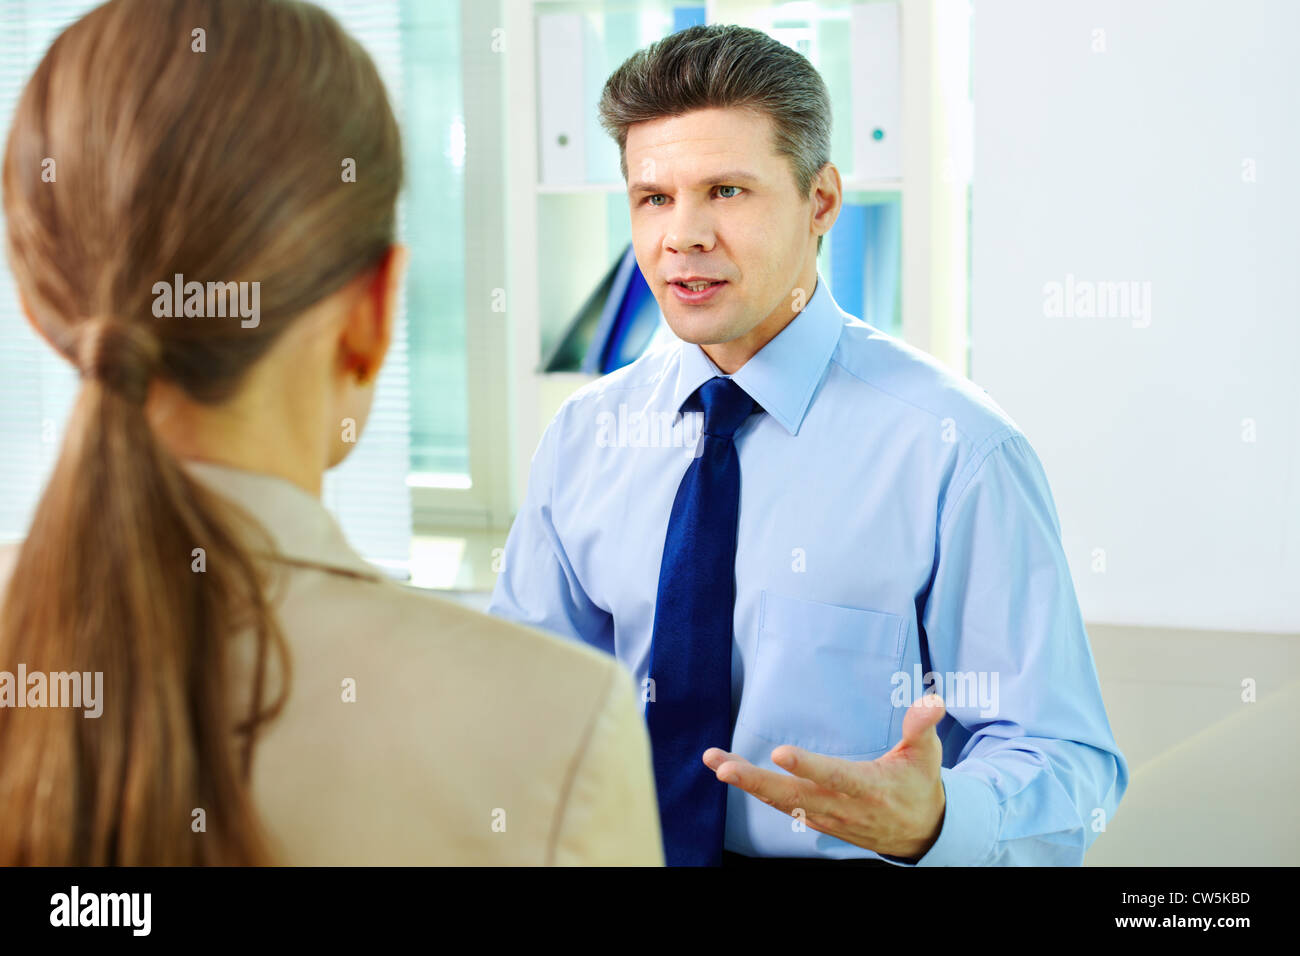 Businessman looking at his female colleague during conversation - Stock Image